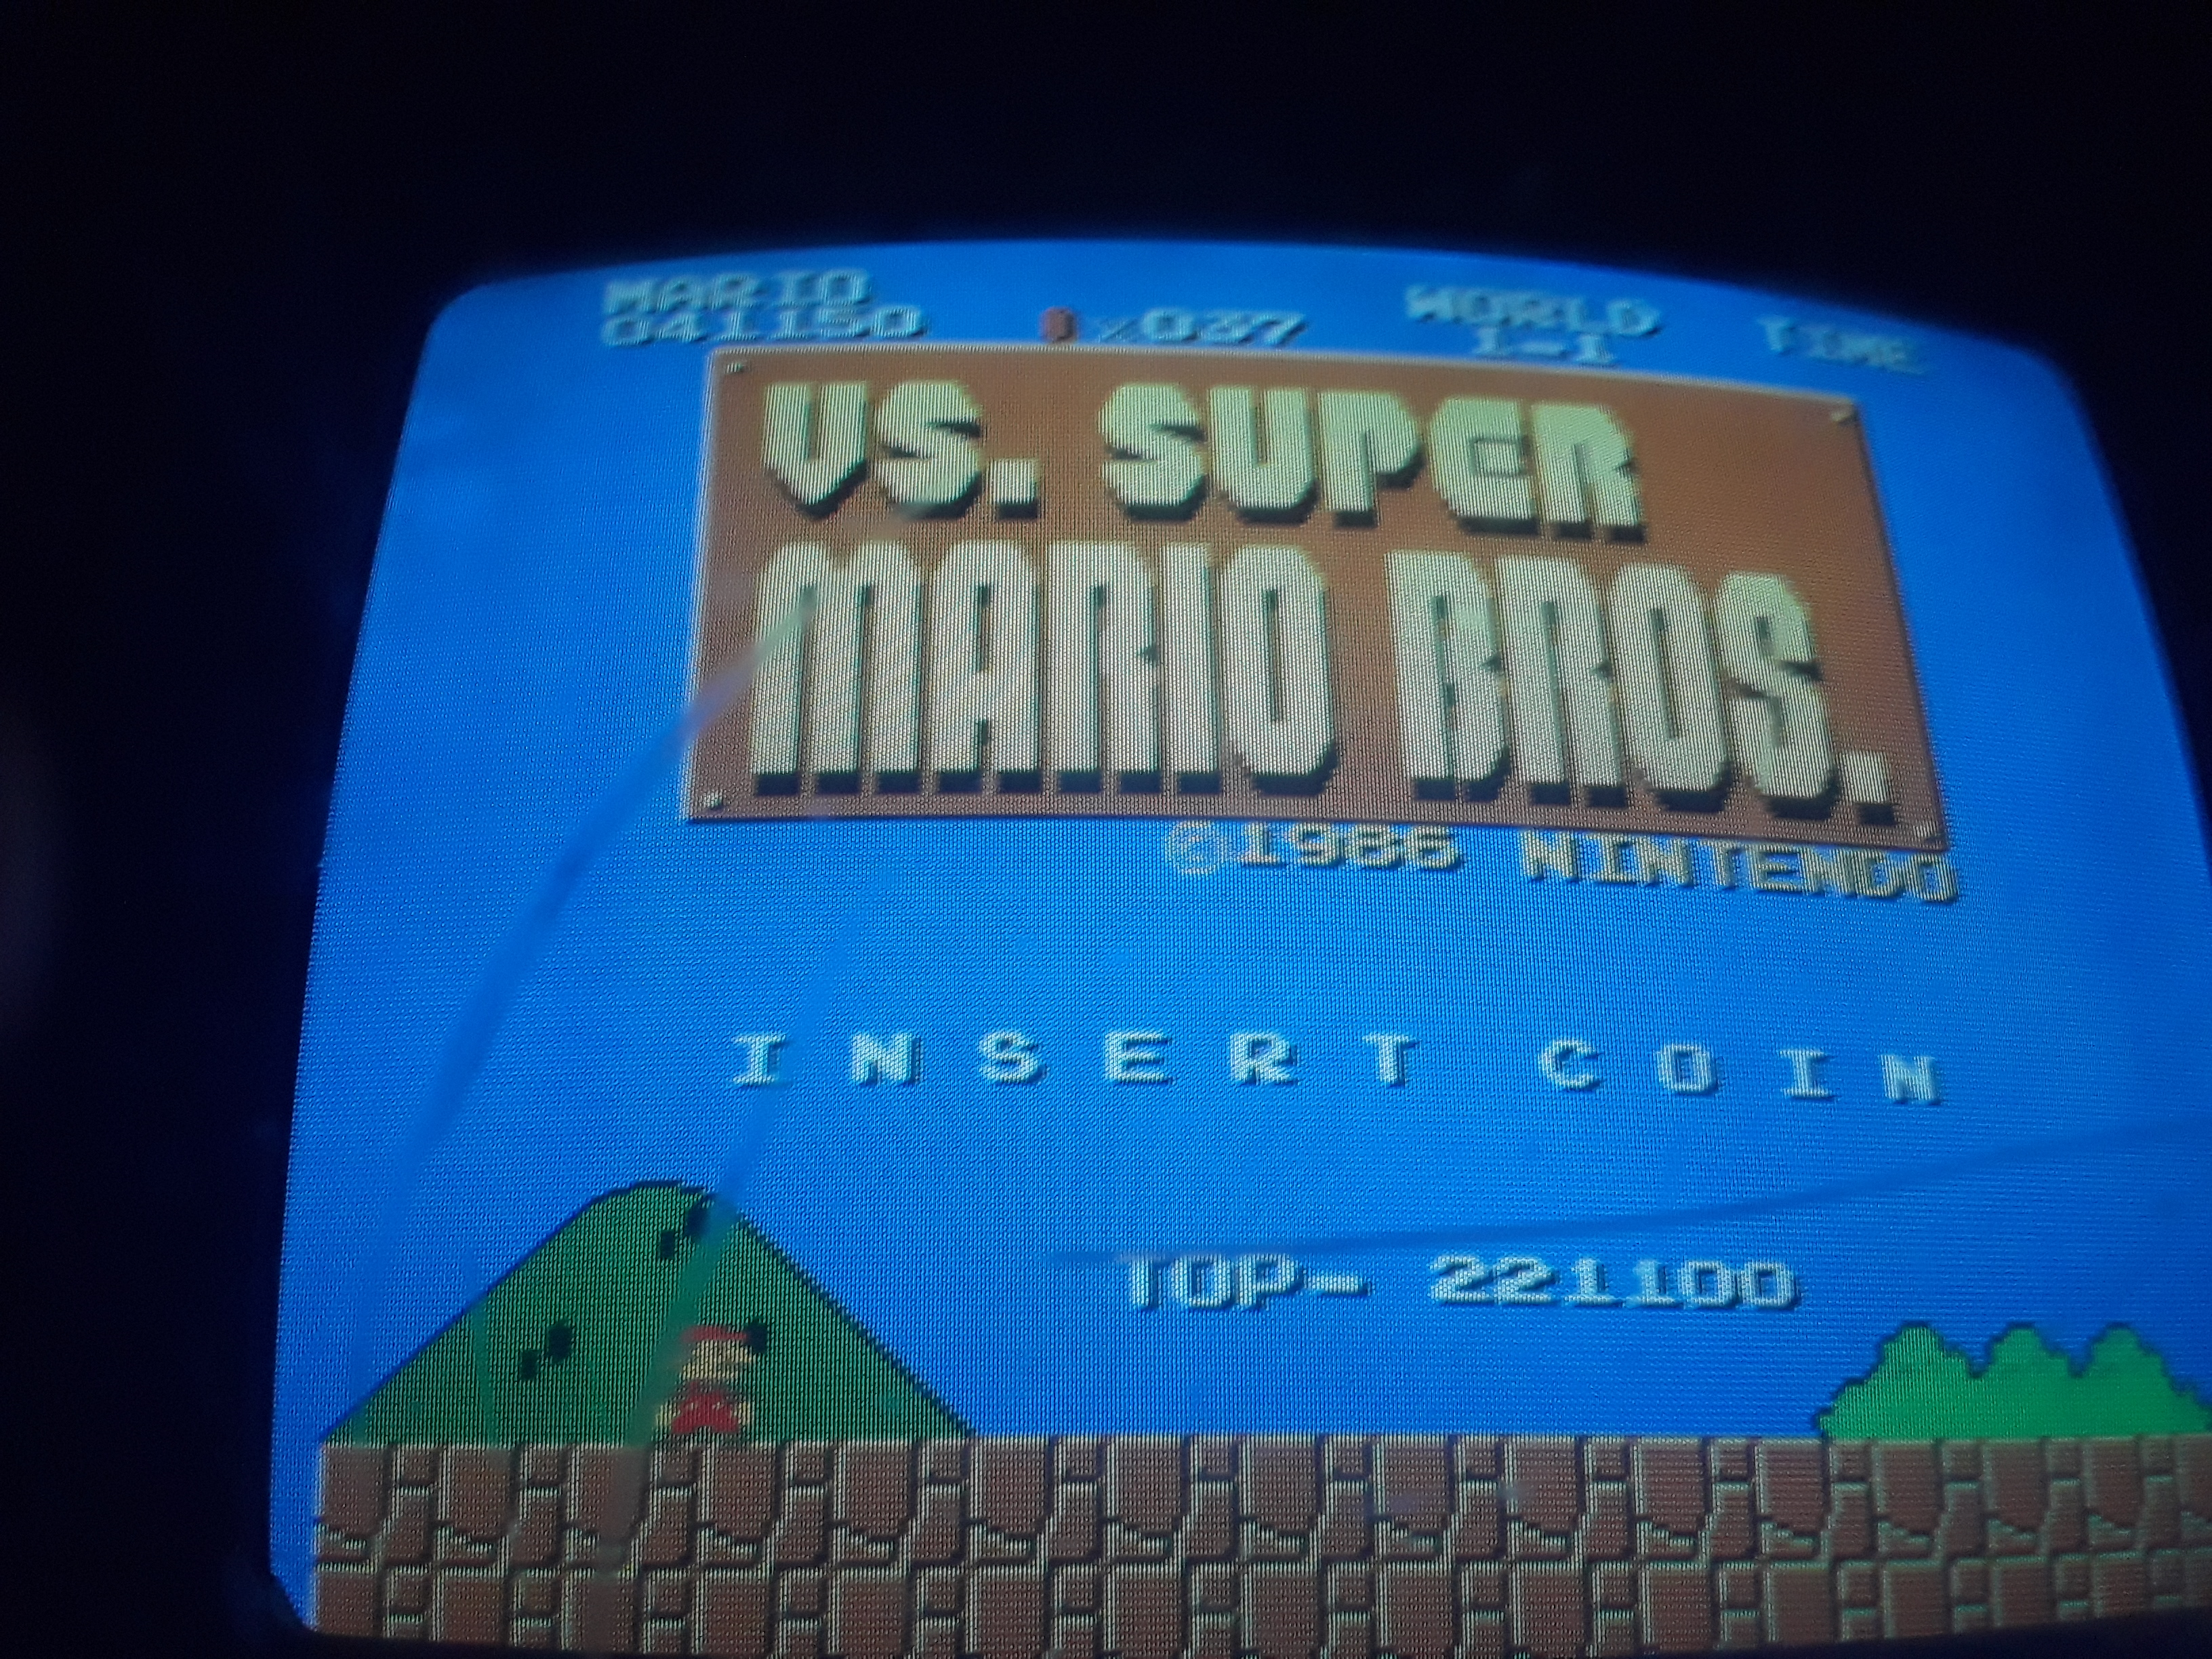 vs. Super Mario Bros 41,150 points